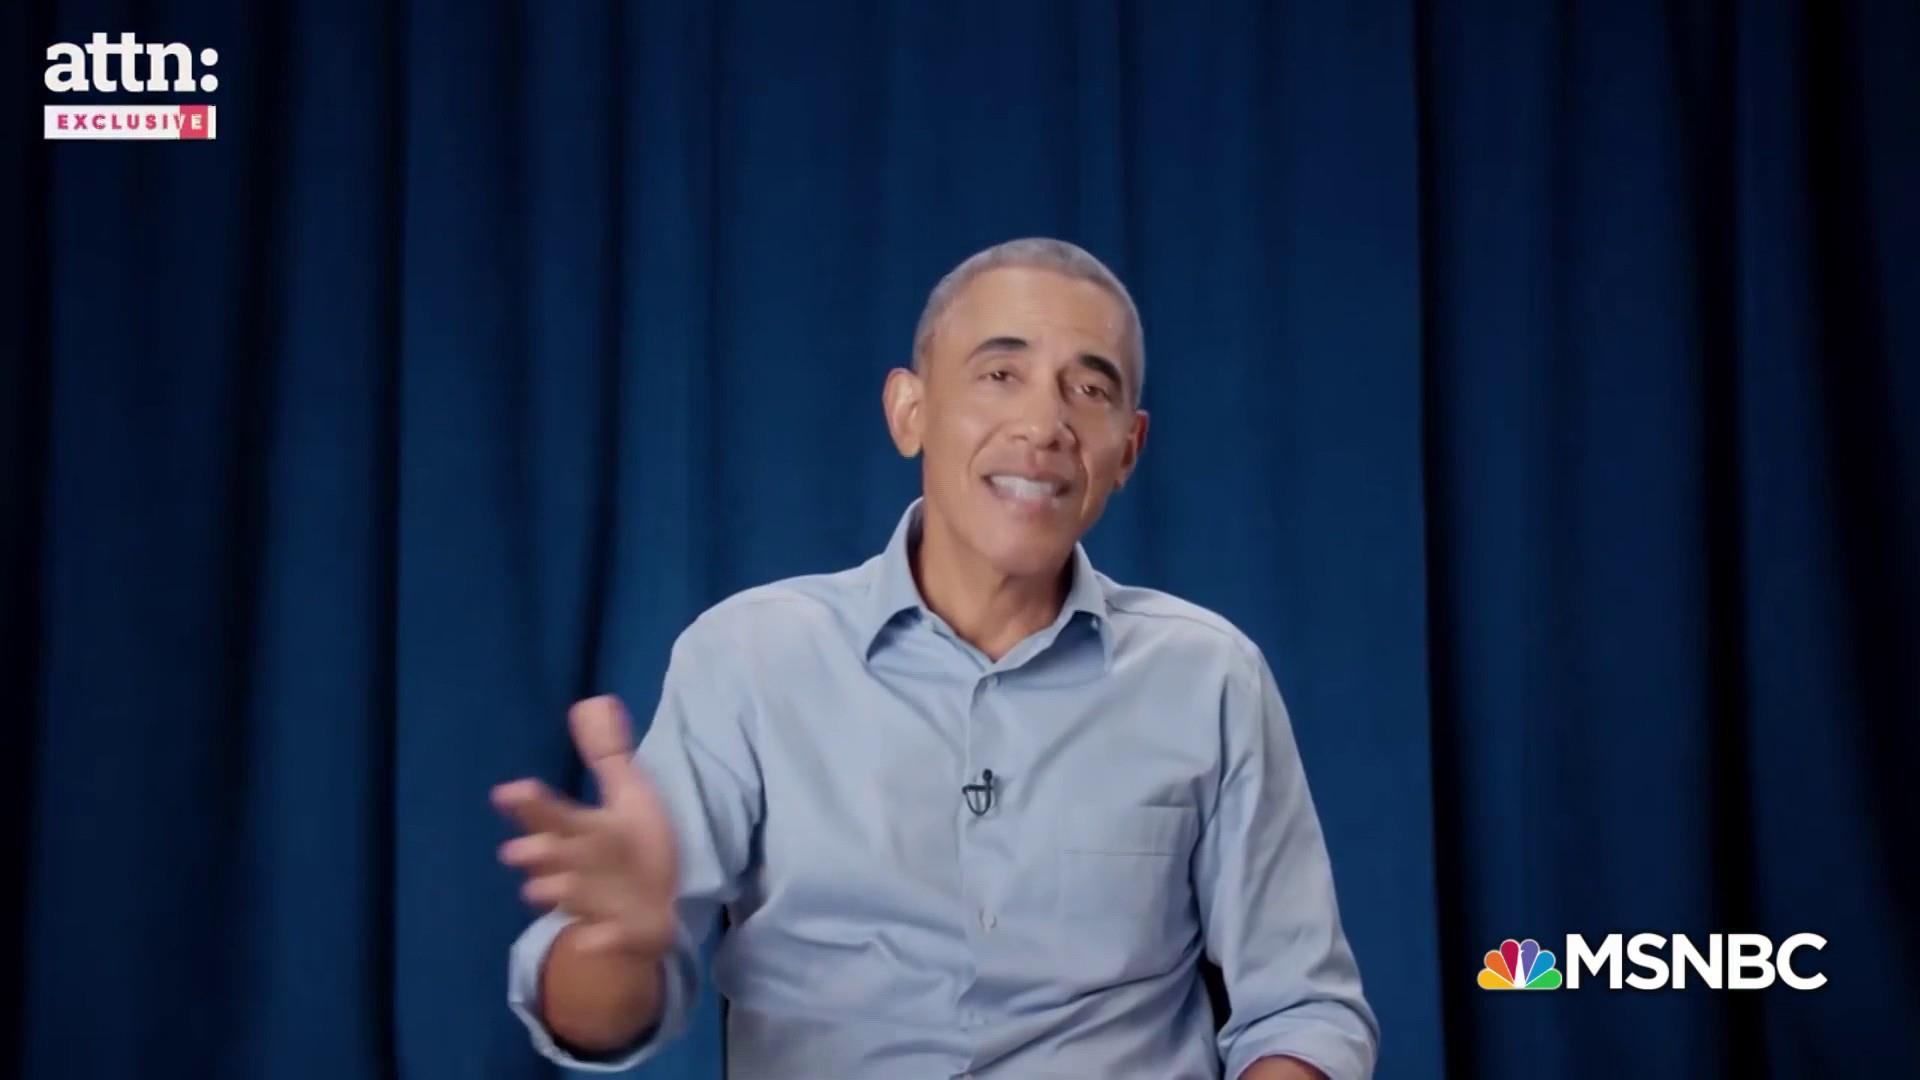 Obama responds to the excuses people give for not voting in new ad